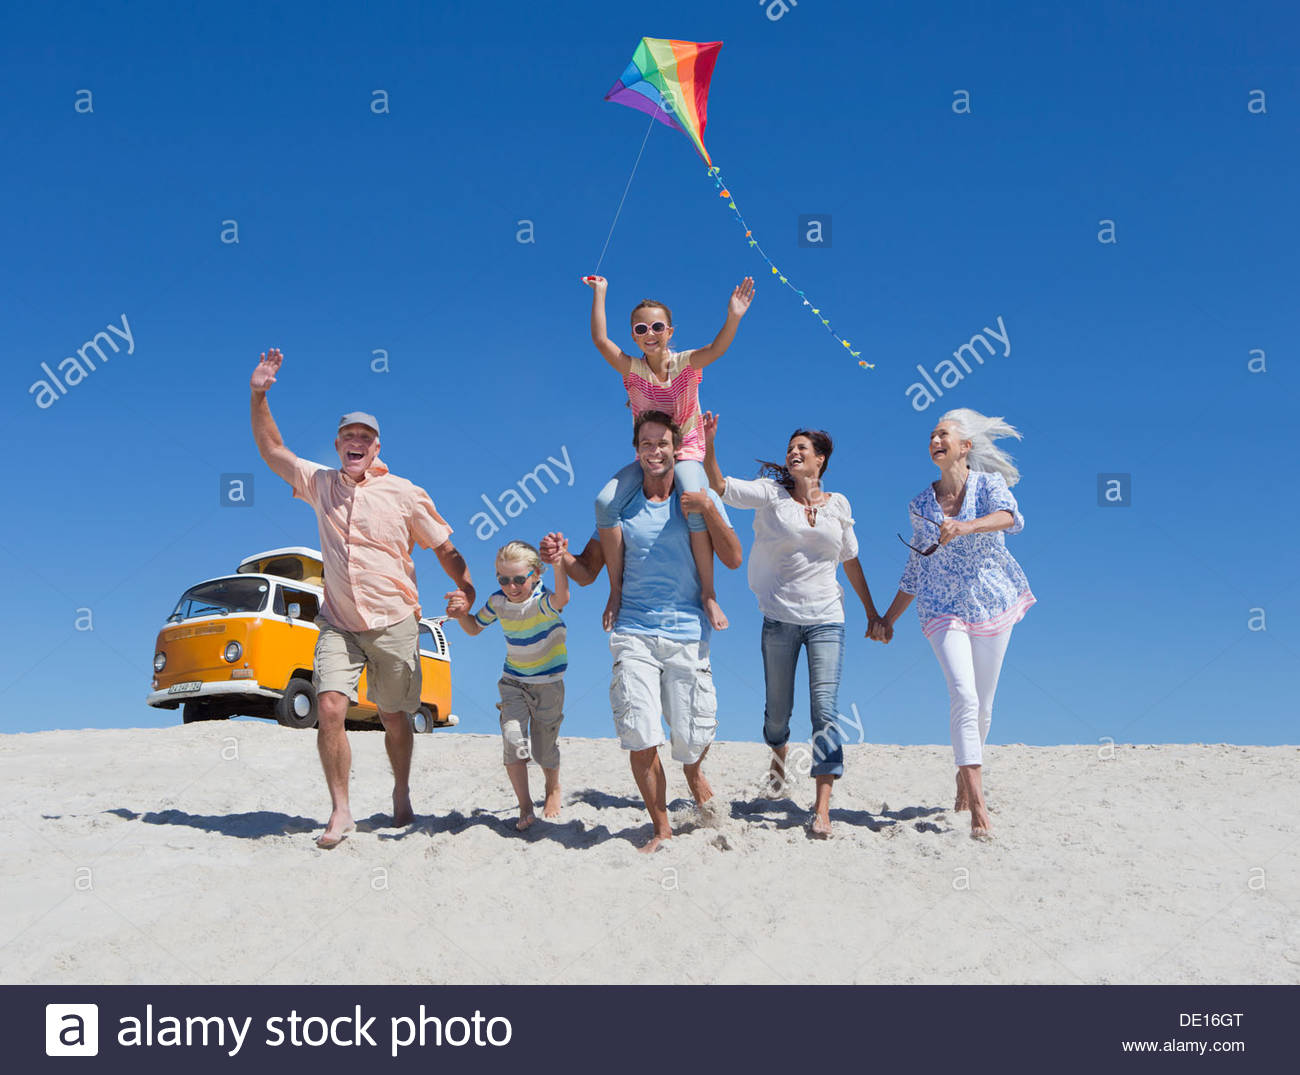 Happy multi-generation family with kite running and waving on sunny beach with van in background - Stock Image